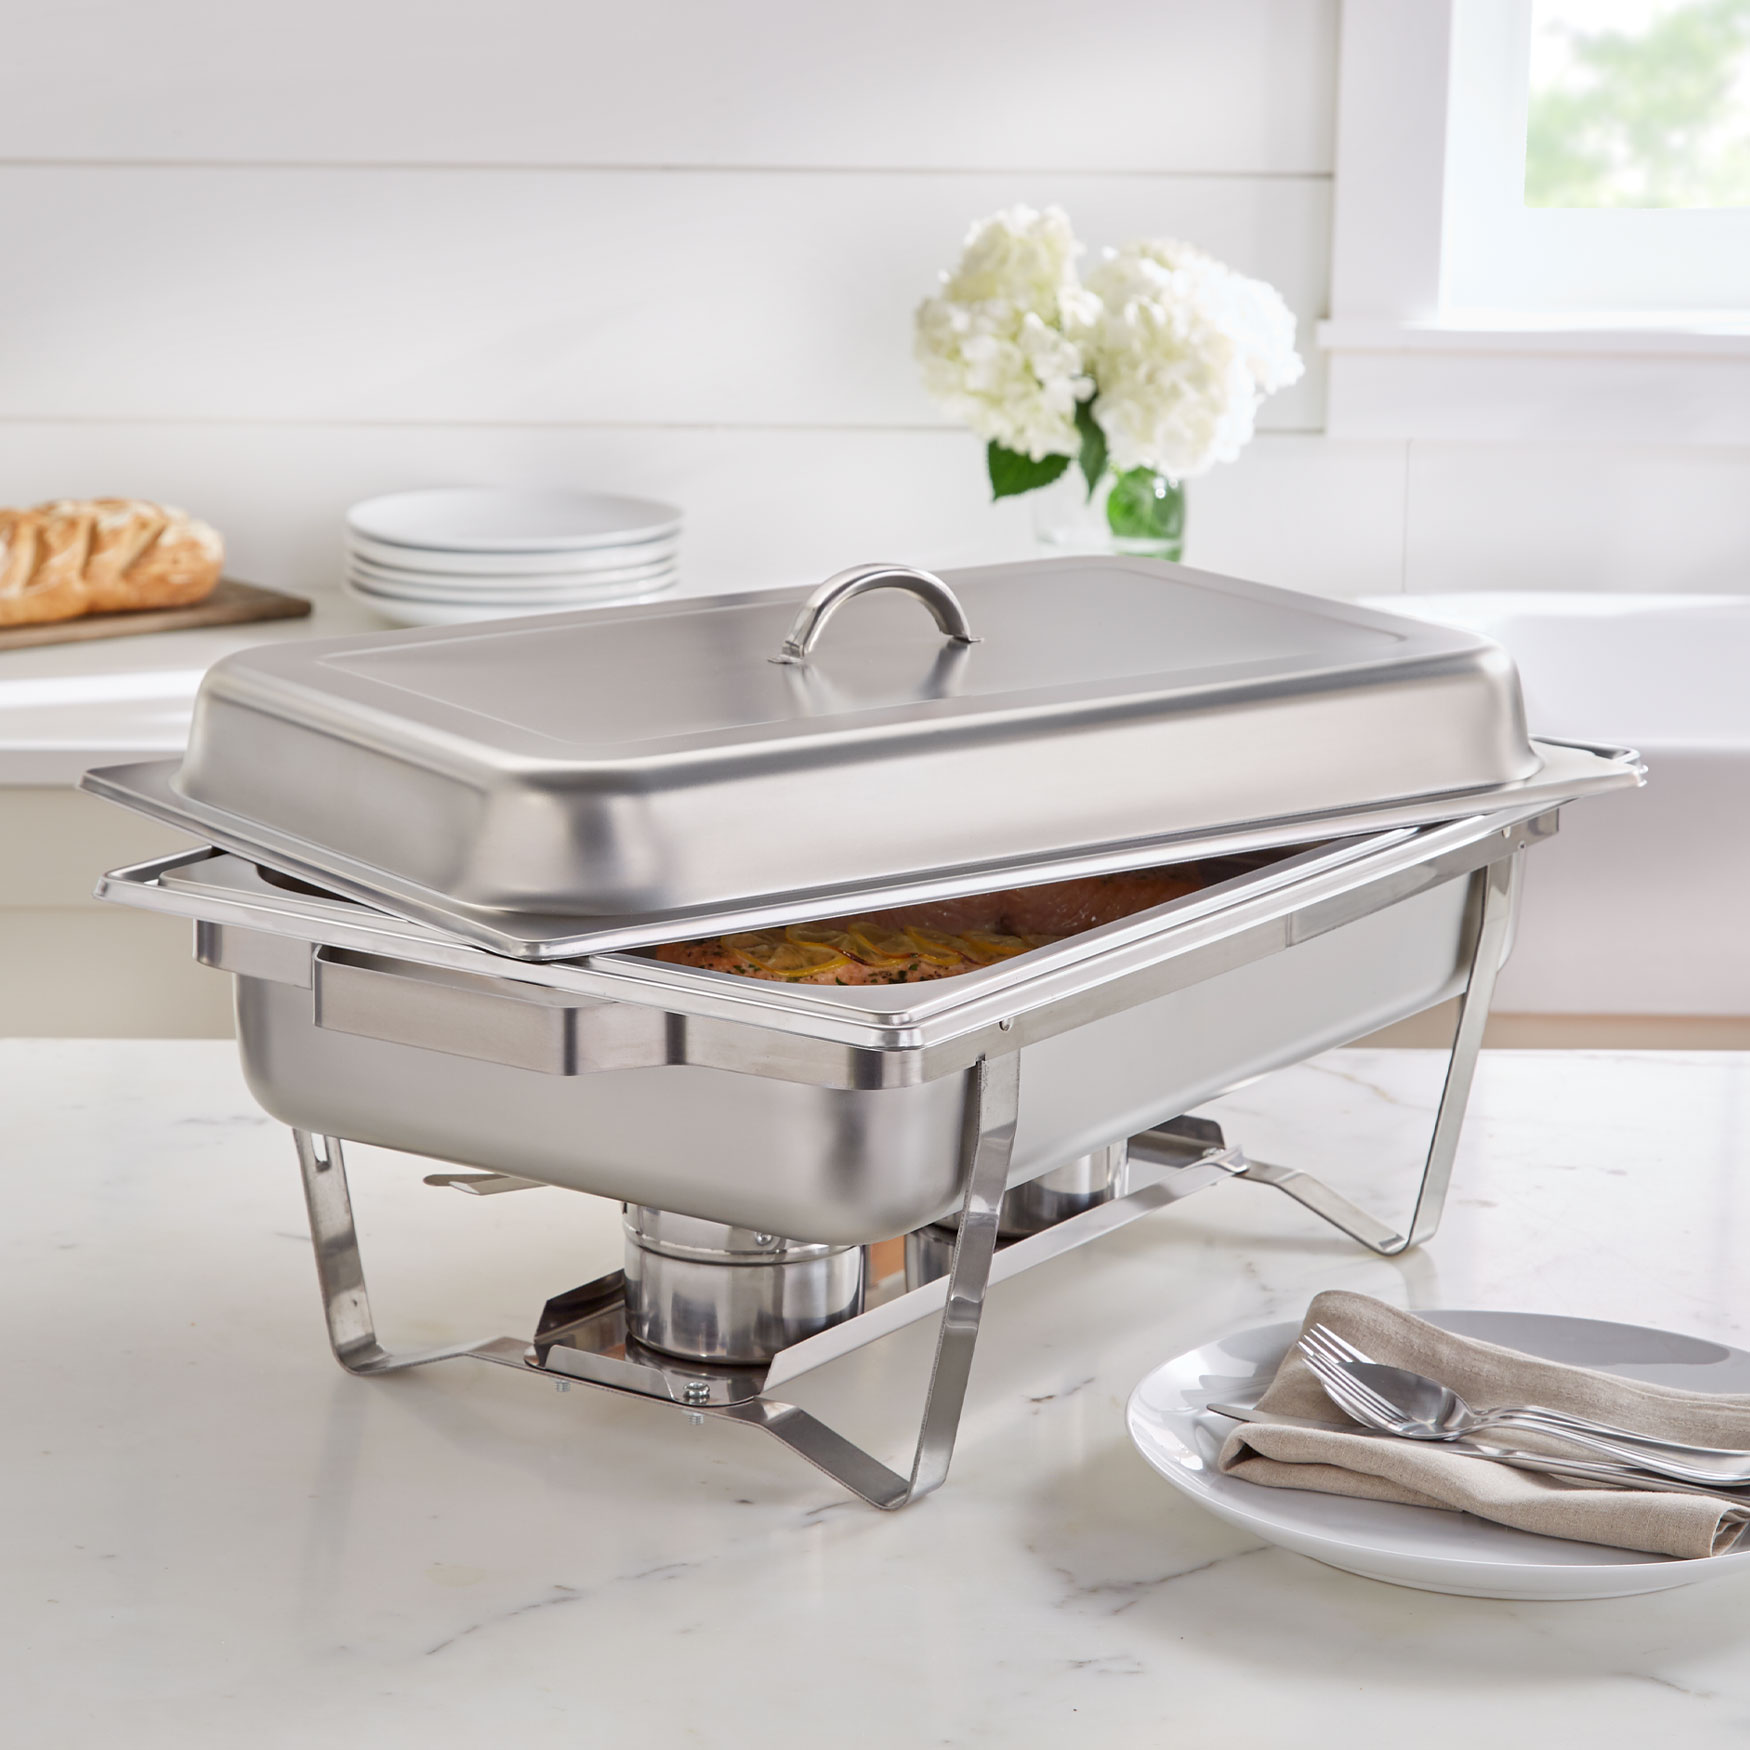 9-Qt. Stainless Rectangular Chafing Dish, STAINLESS